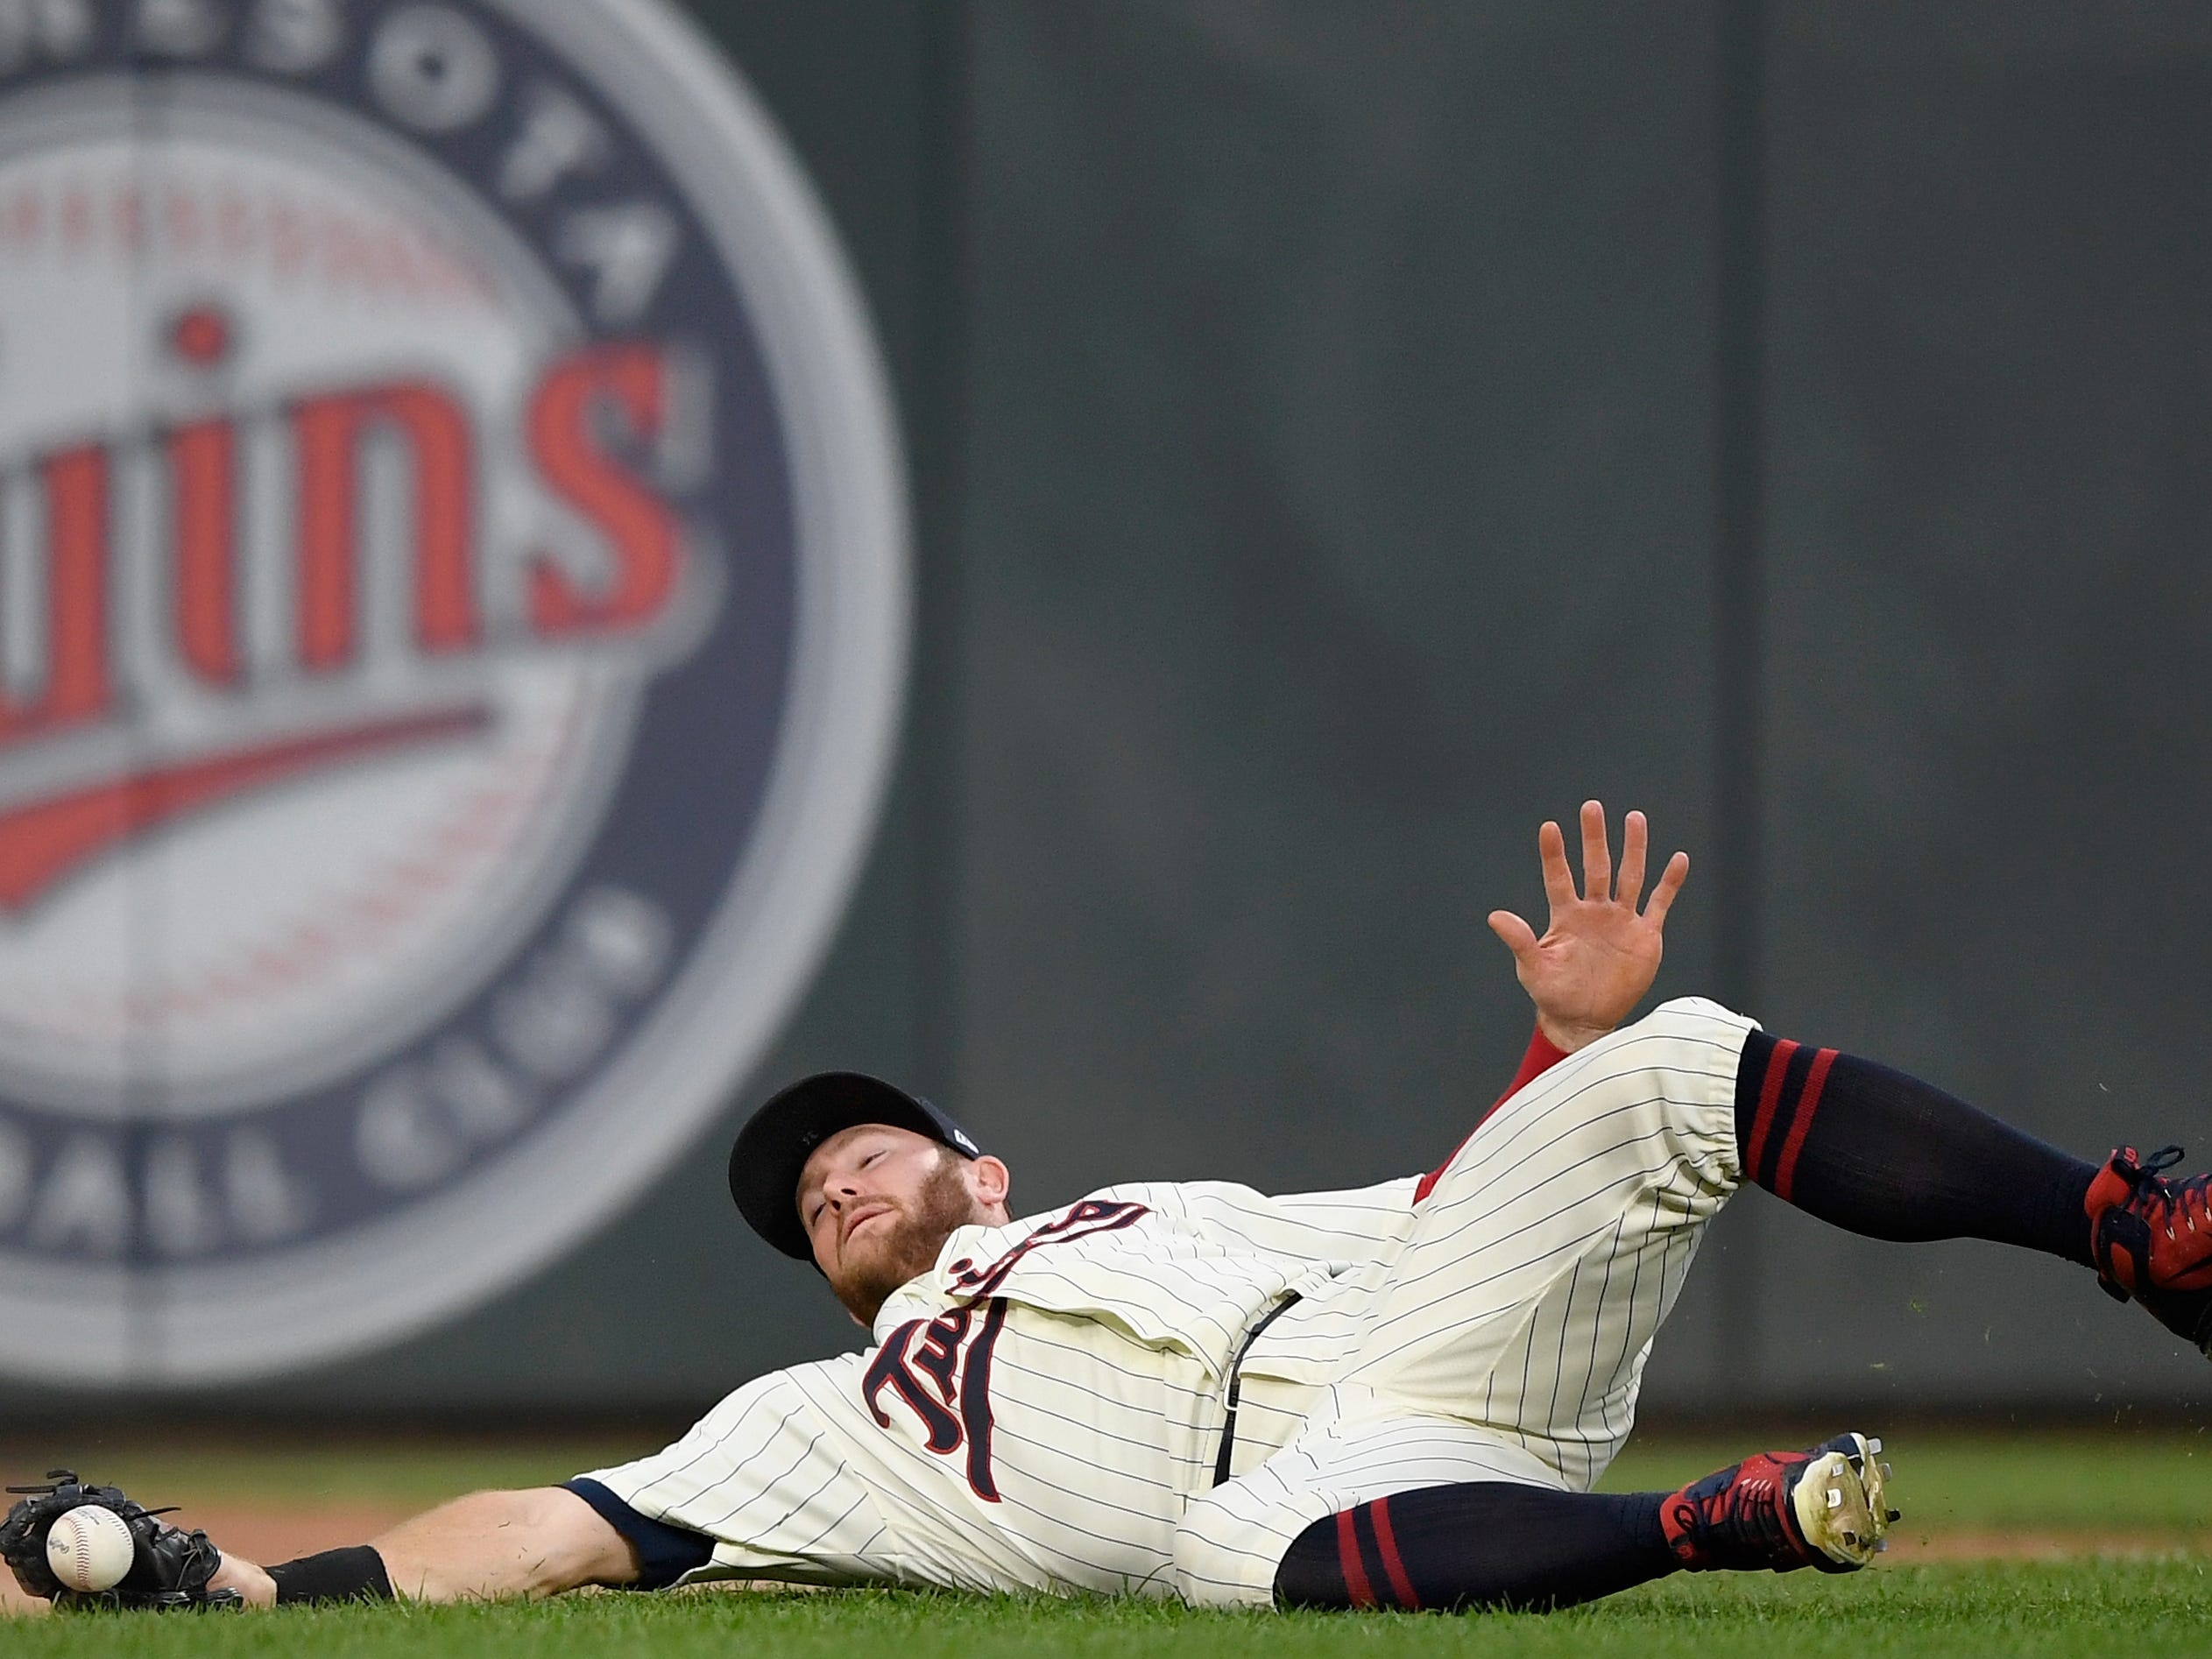 MINNEAPOLIS, MN - SEPTEMBER 12: Robbie Grossman #36 of the Minnesota Twins is unable to field a foul ball hit by Aaron Hicks #31 of the New York Yankees during the first inning of the game on September 12, 2018 at Target Field in Minneapolis, Minnesota.